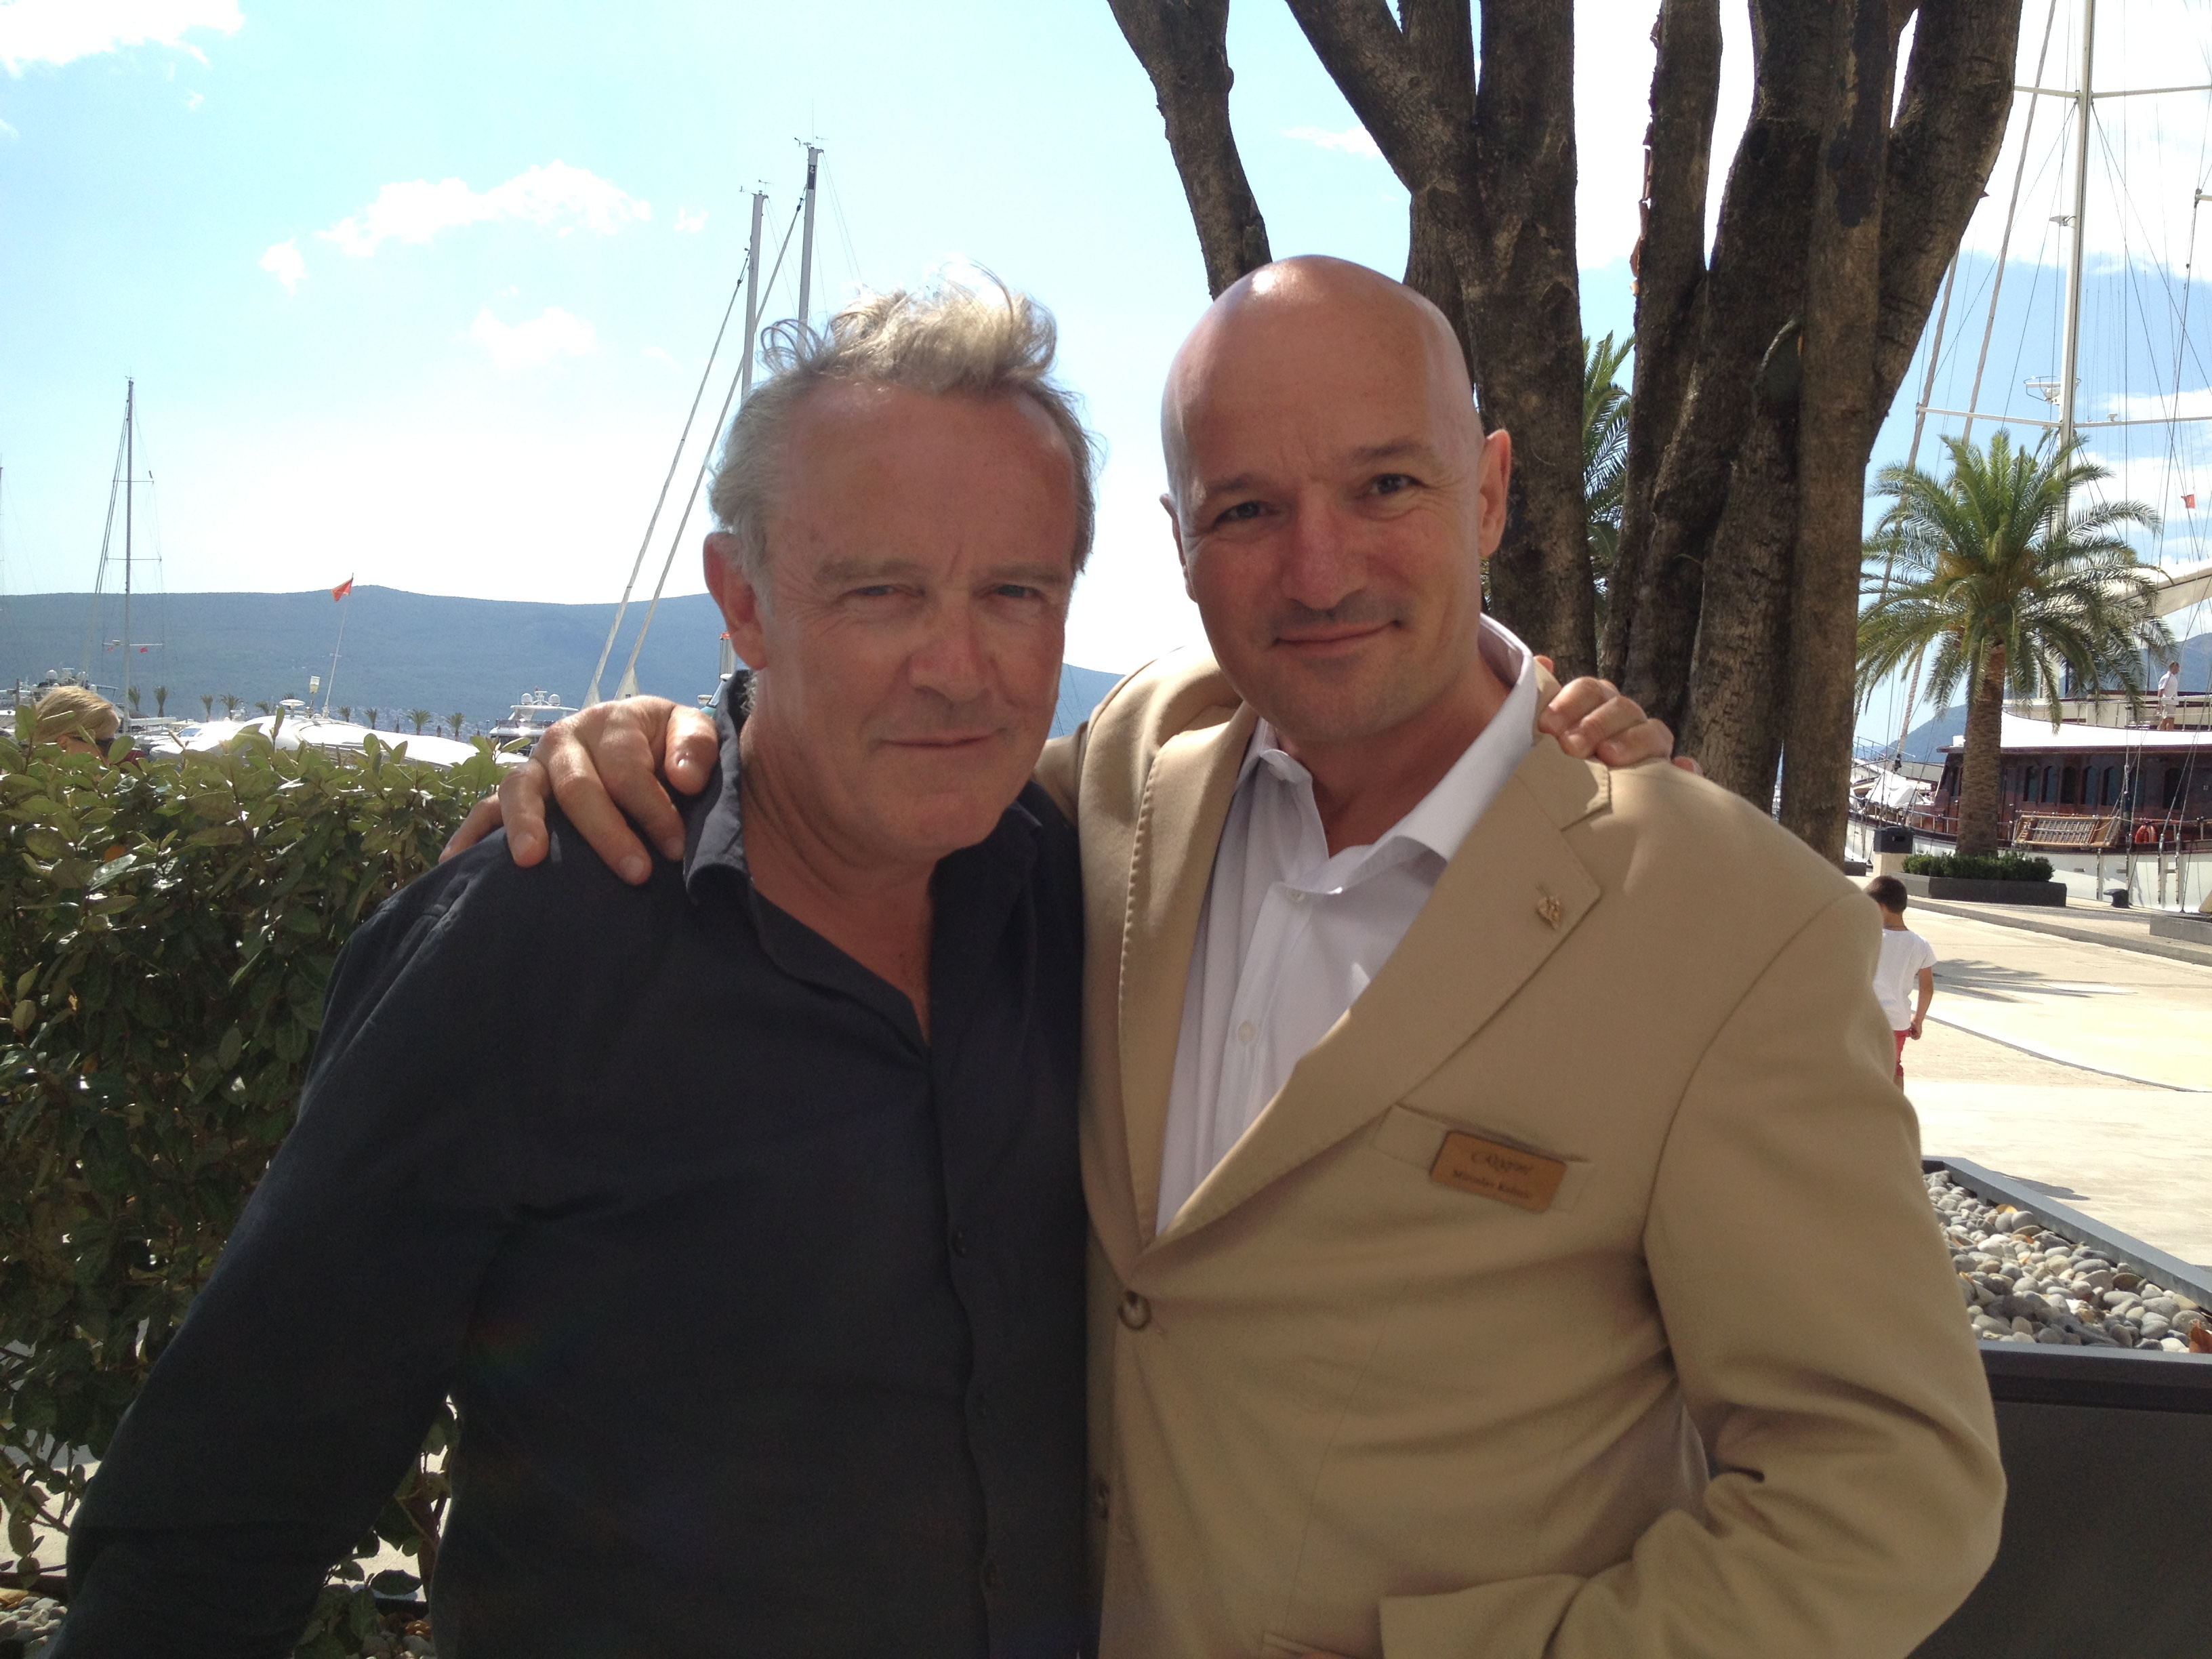 At Regent Hotel with Alain Passard is a French chef and owner of the three-star restaurant L'Arpège in Paris.jpg